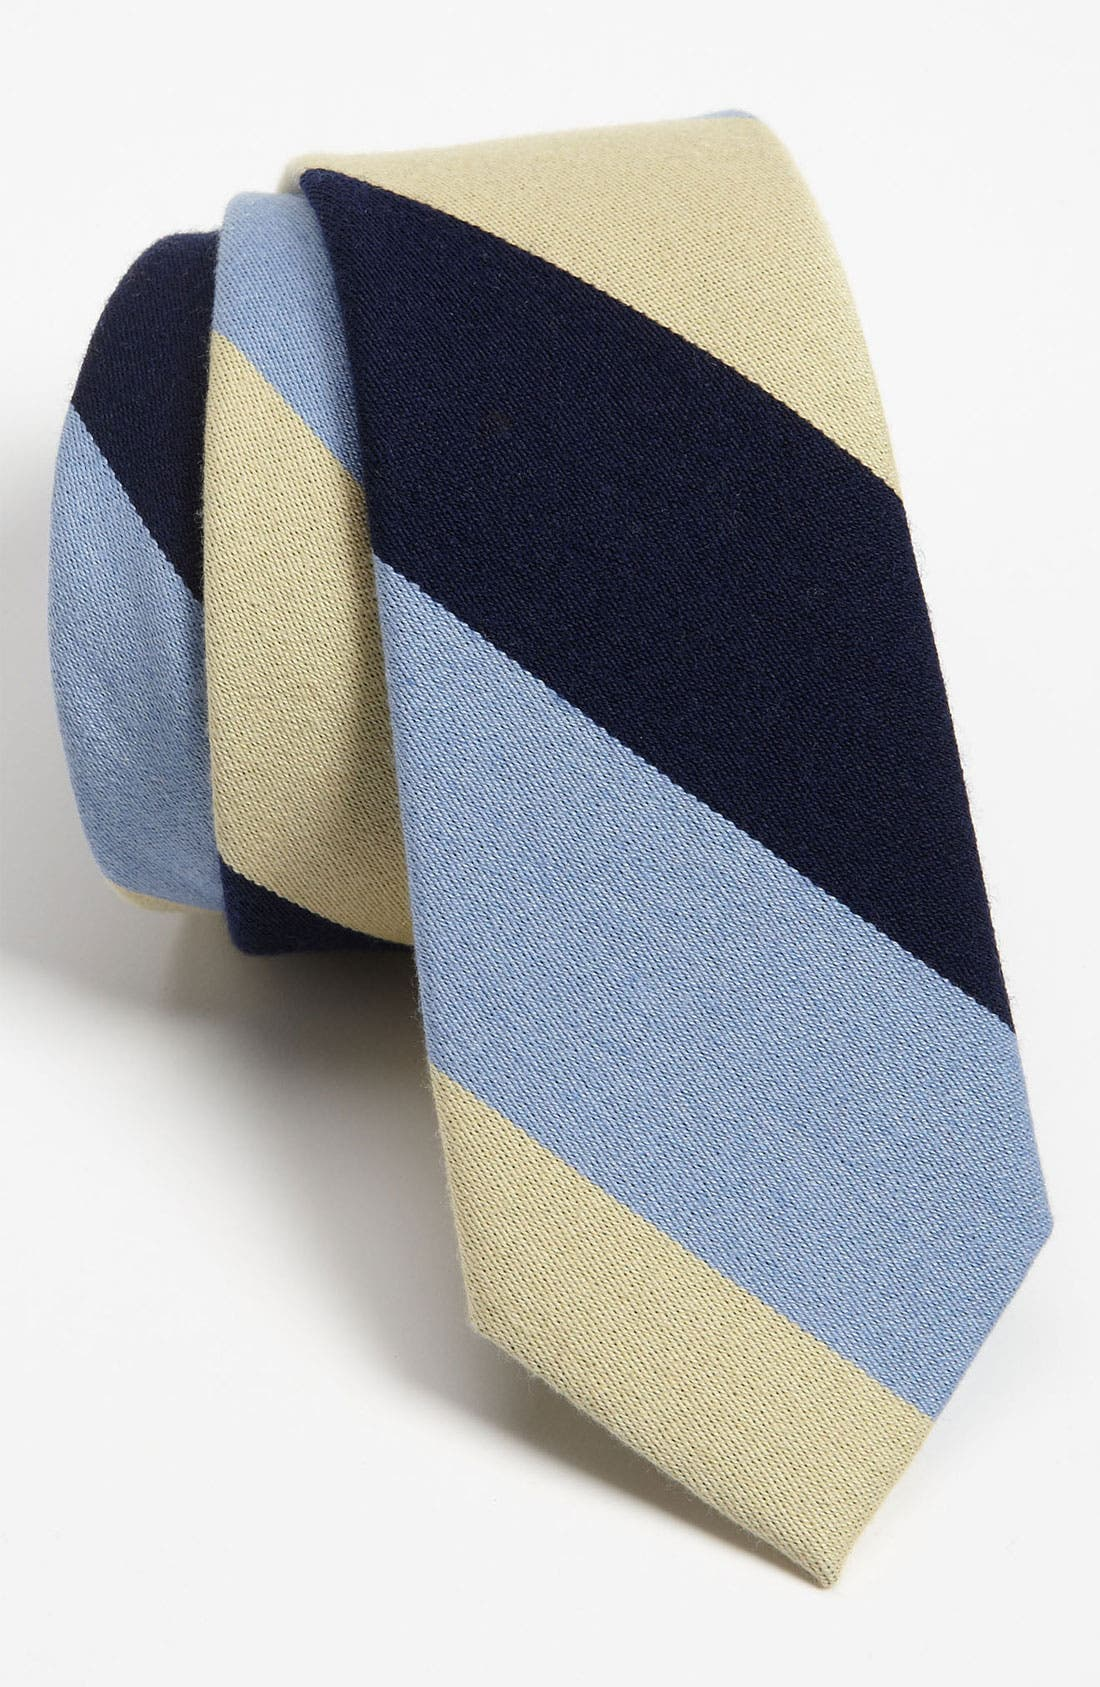 Main Image - The Tie Bar Woven Tie